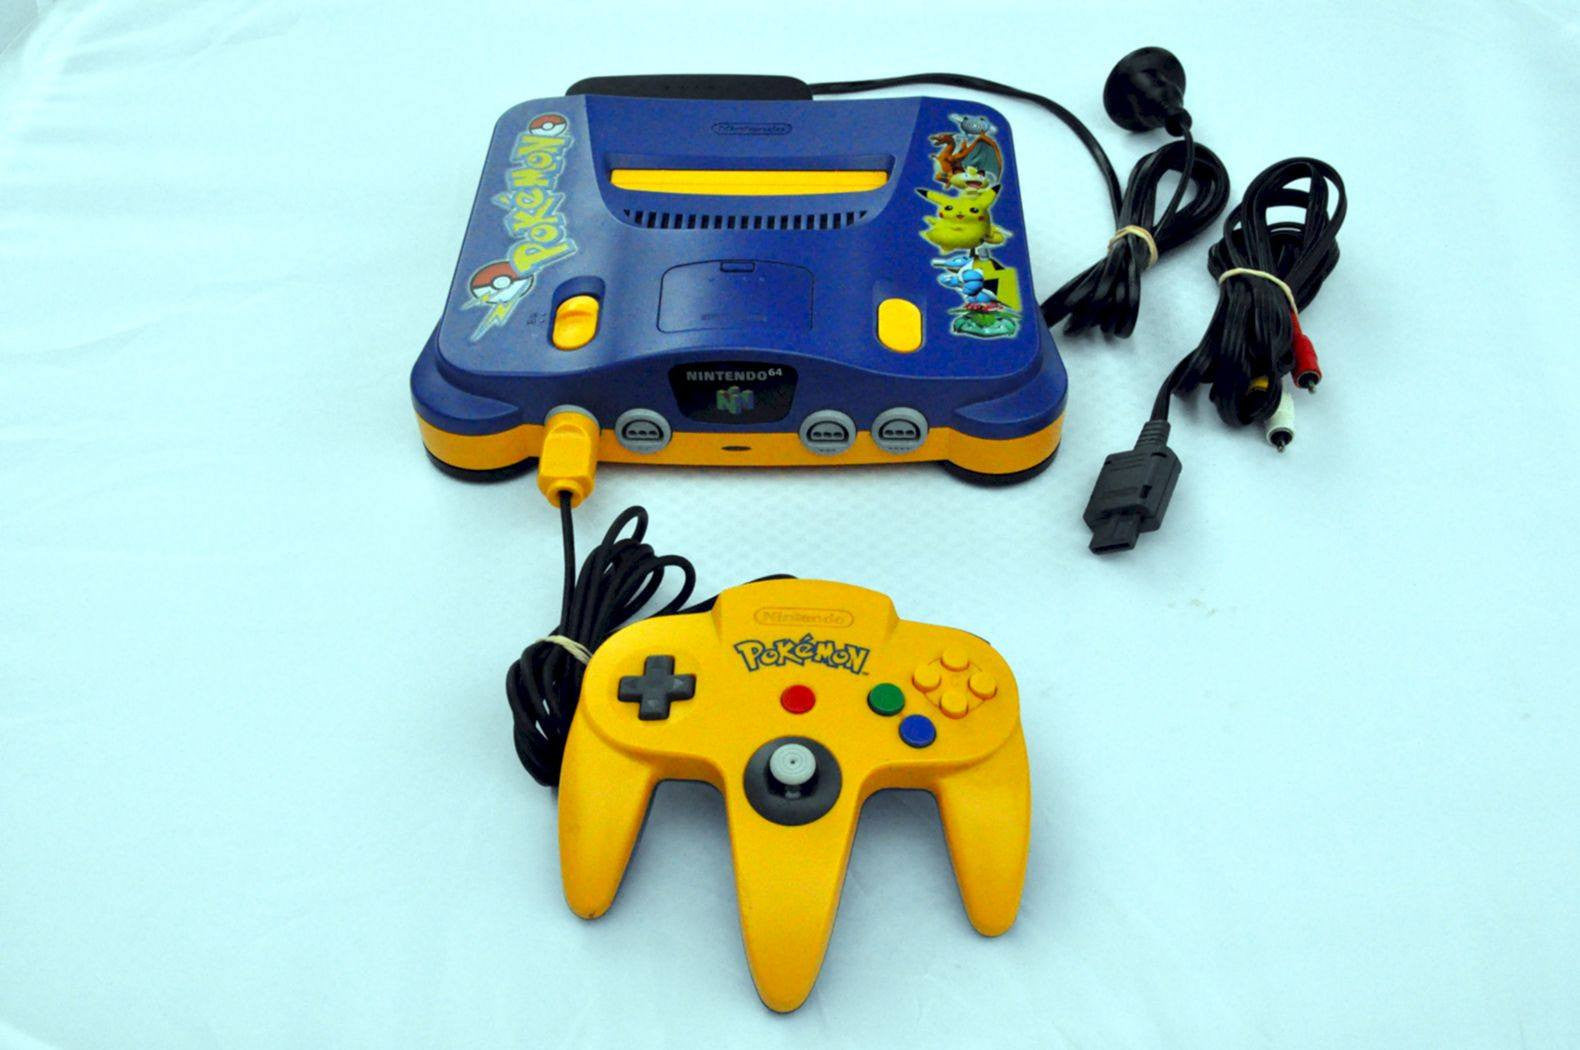 Console - Console | Nintendo 64 | N64 Pokemon Special Edition Console NUS-001 + Controller